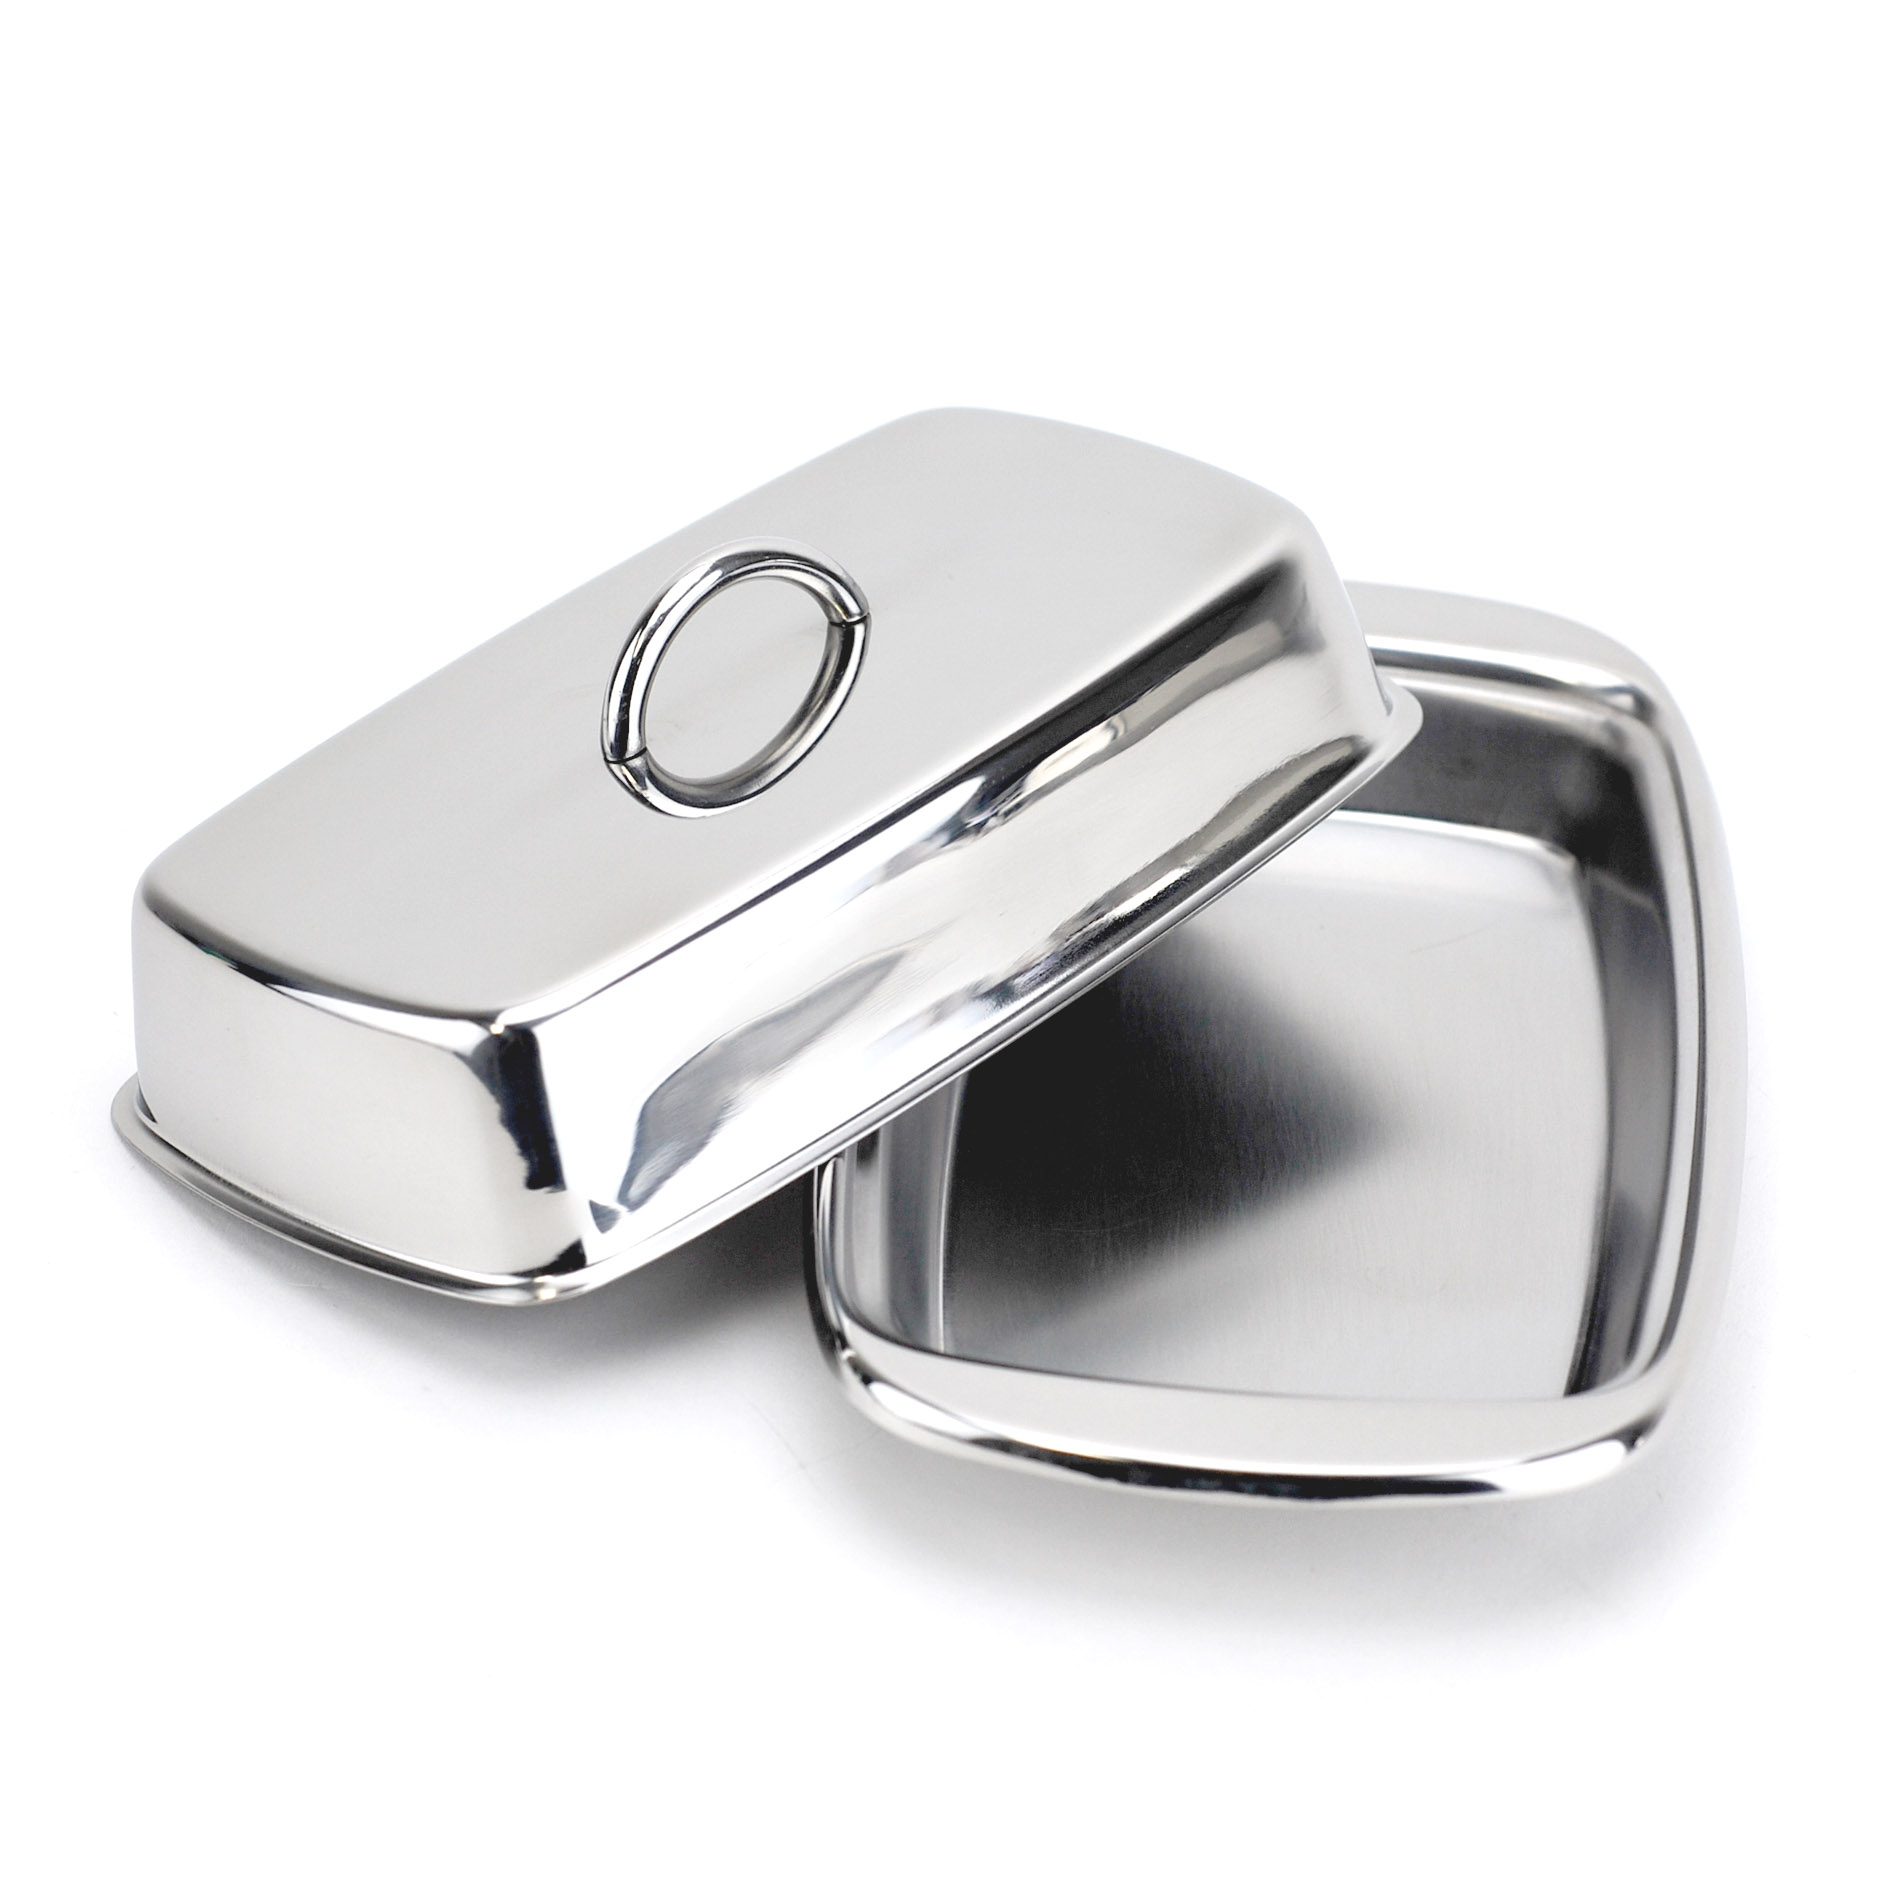 Stainless Steel Retro Butter Dish With Stainless Steel Lid Stainless Steel Butter Dishes Kitchen Dining Bar Supplies